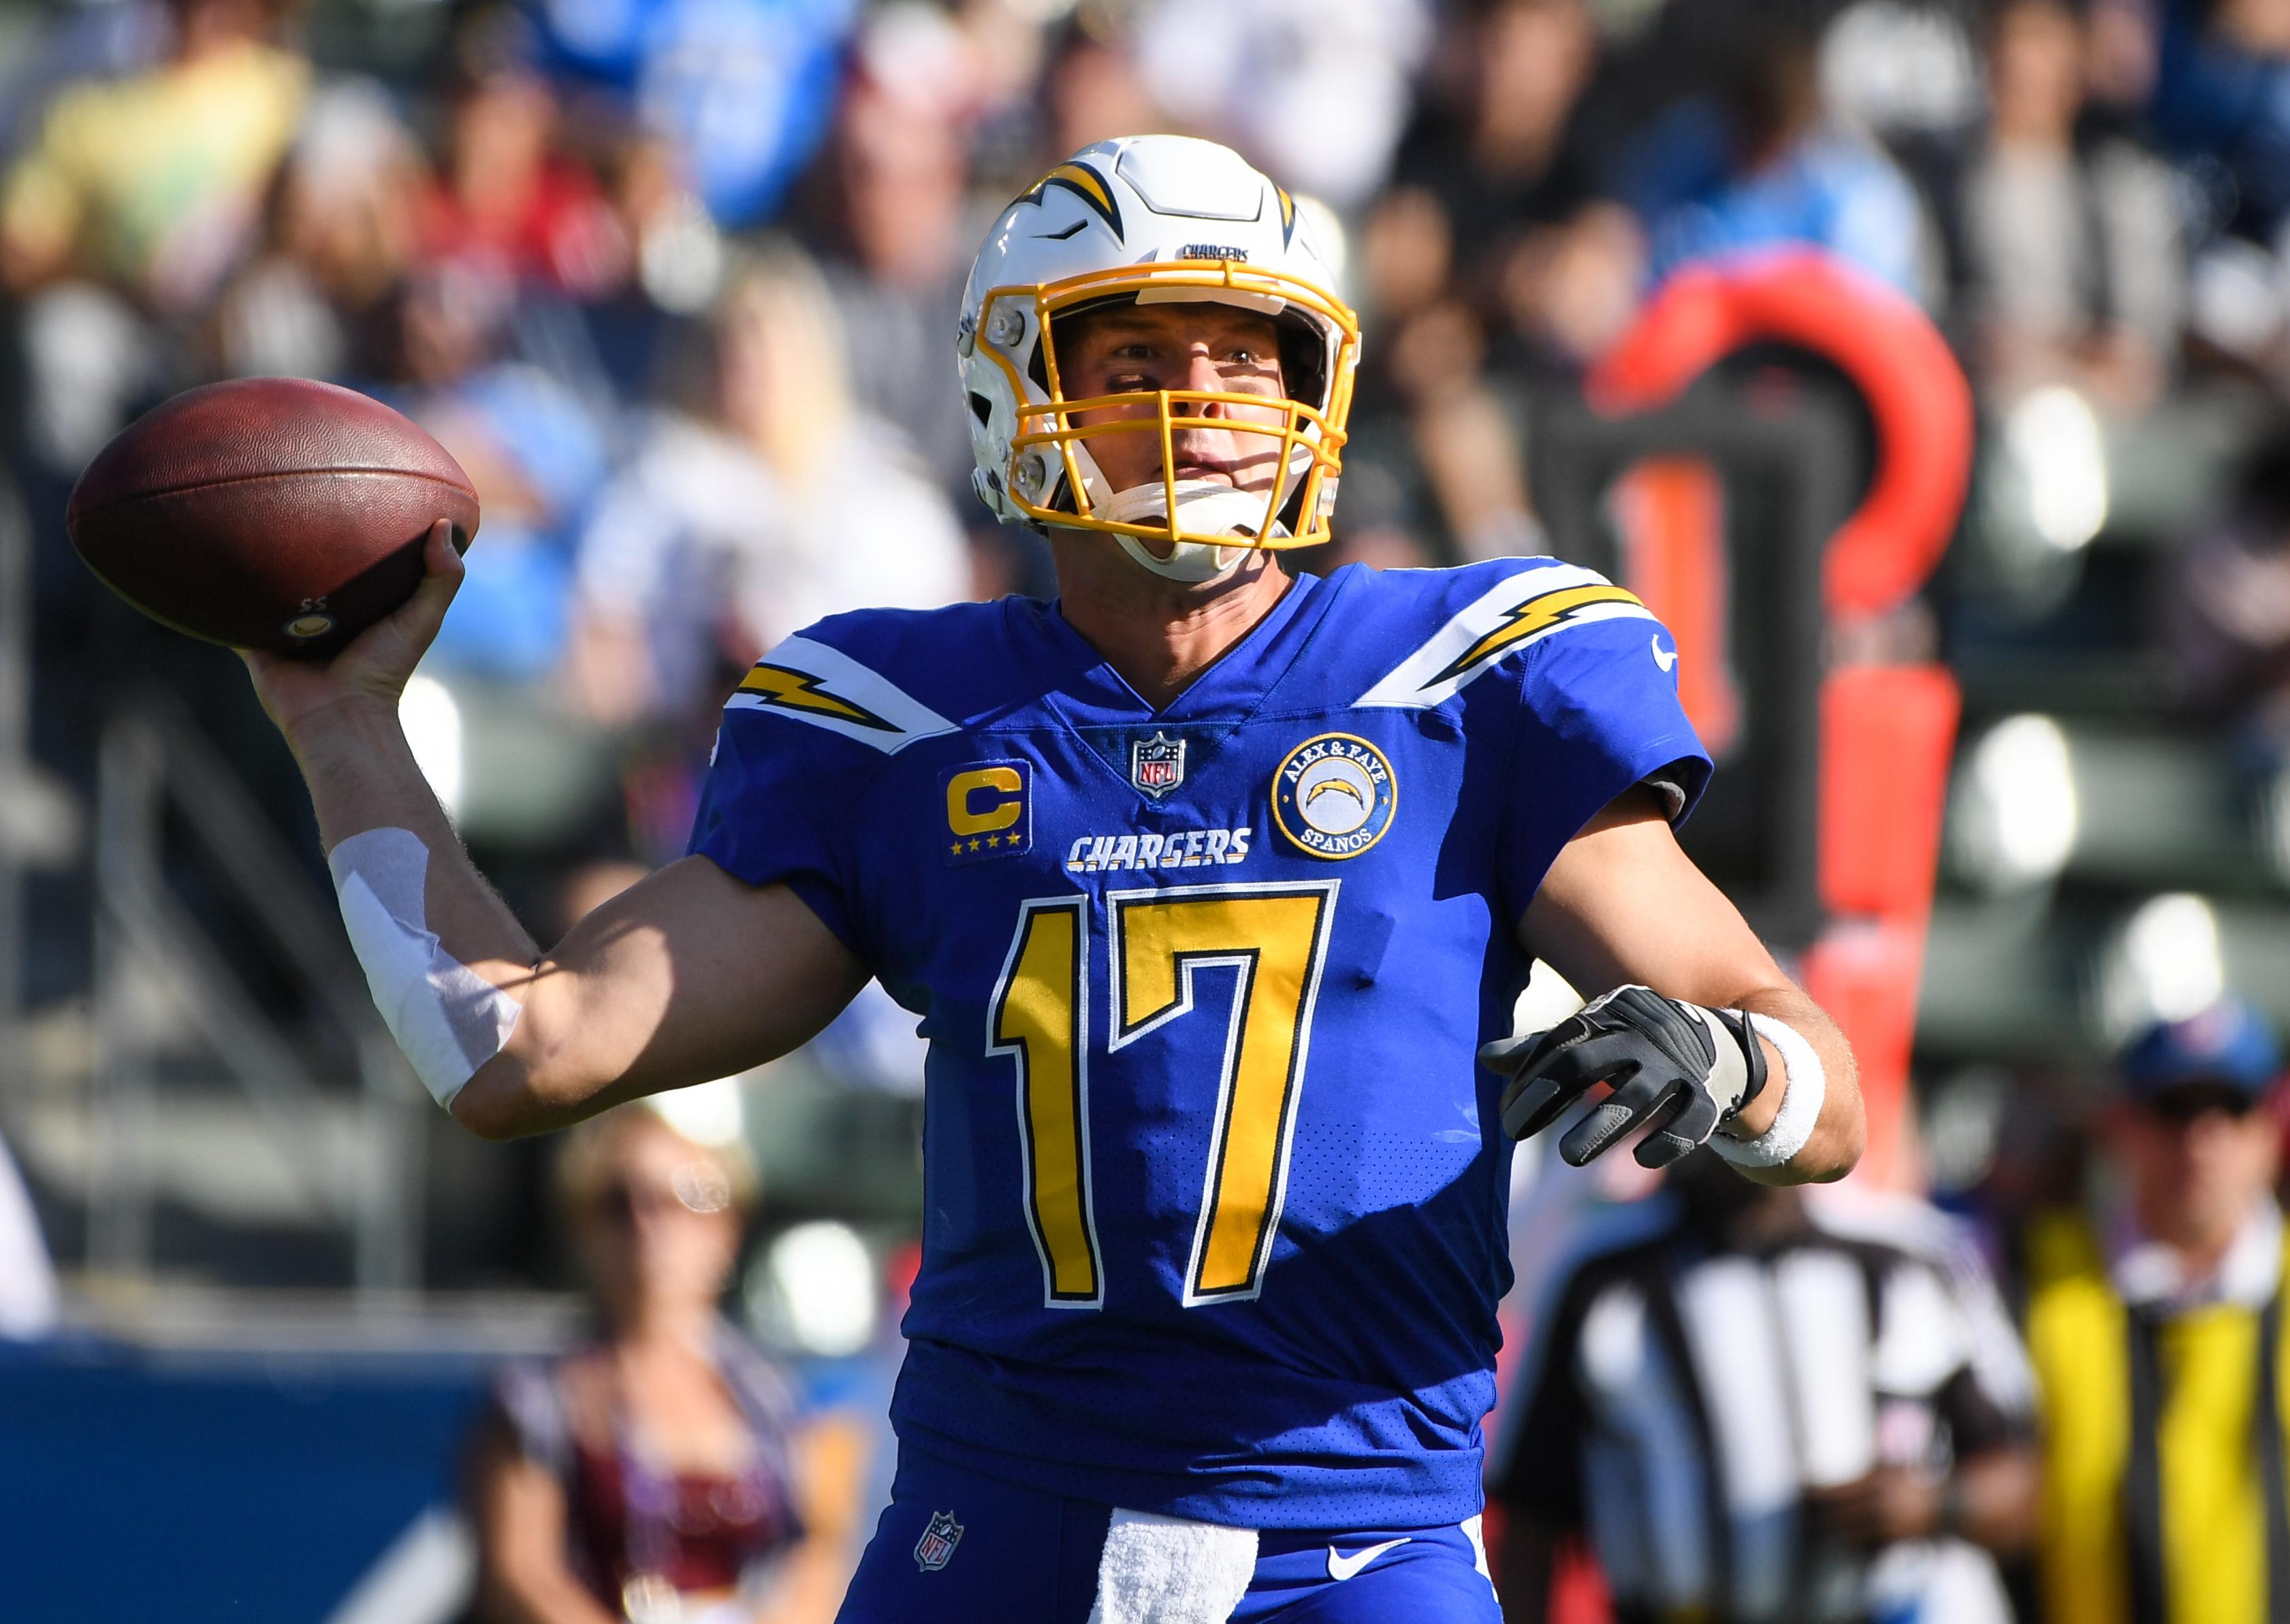 Philip Rivers ties NFL record with 25th straight completion